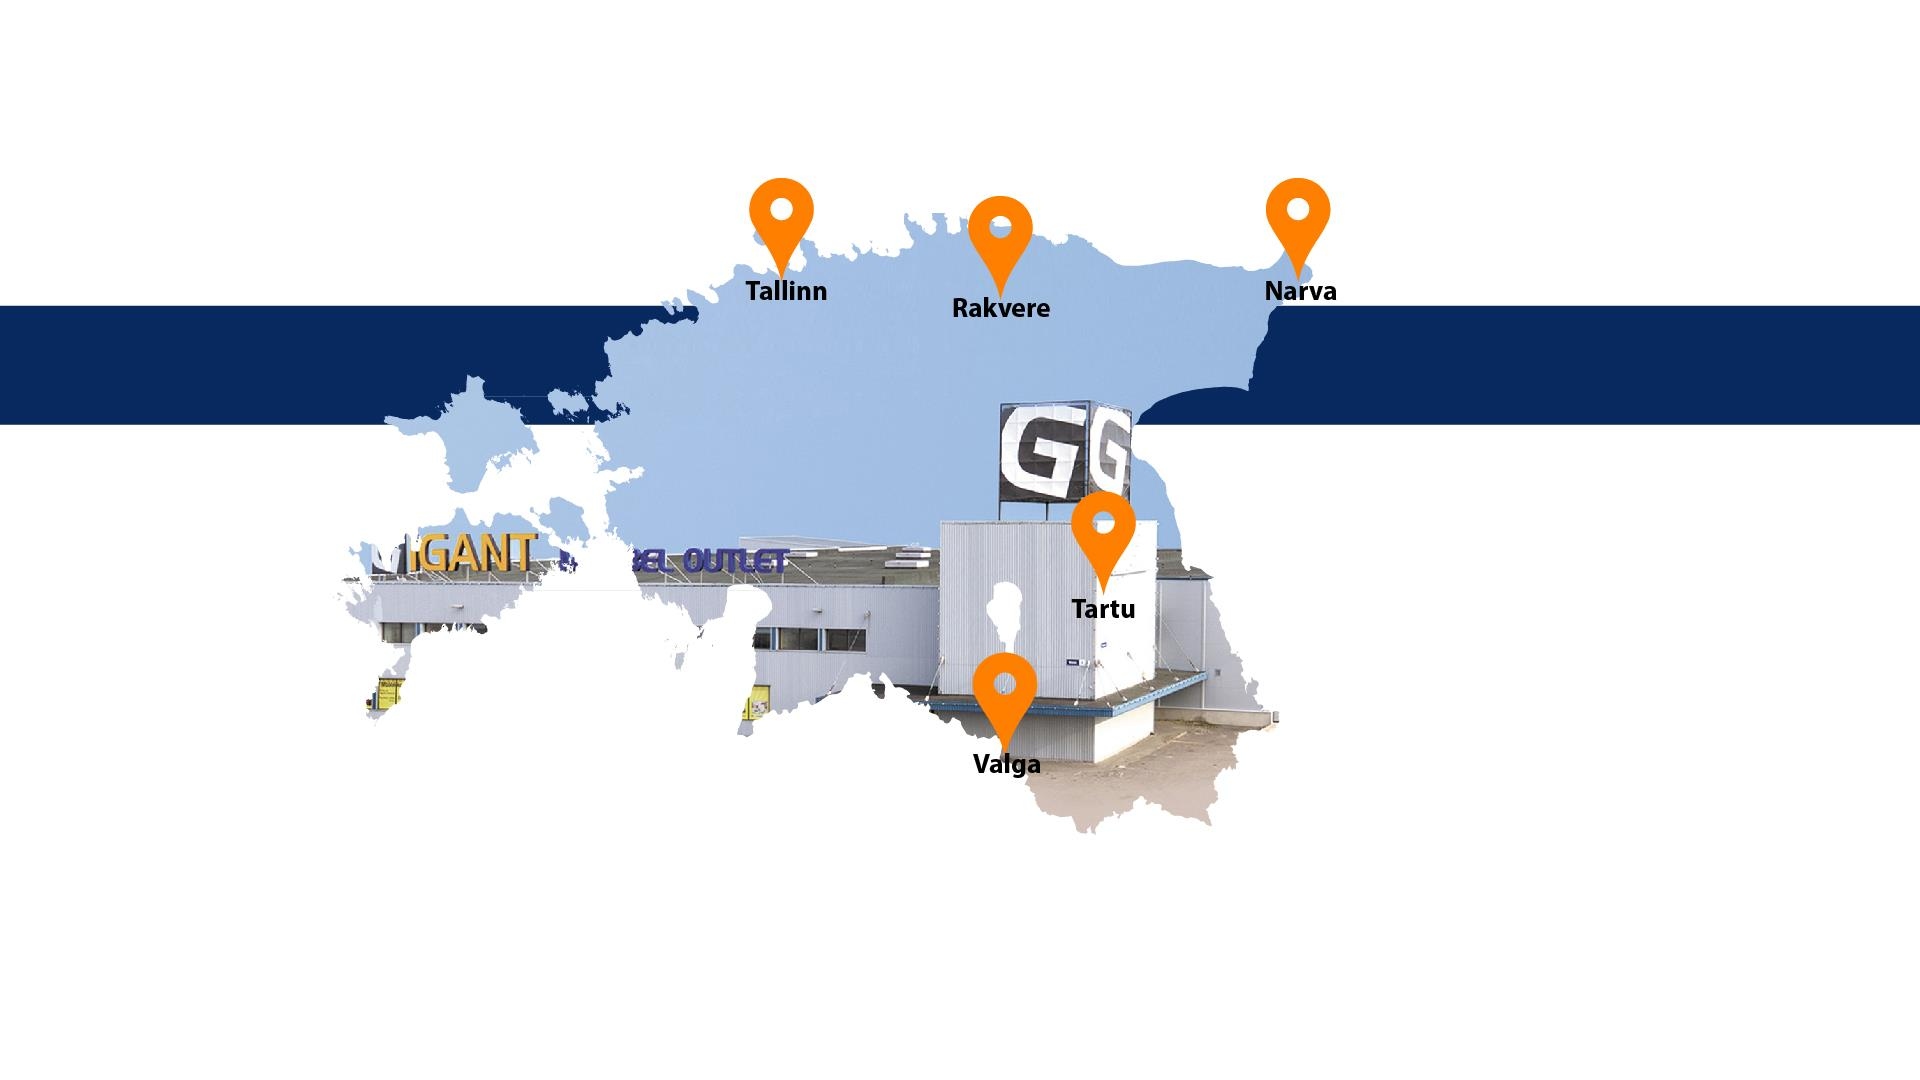 c32cc1874e2 Gigant has developed considerably over the years. In Estonia, we have  stores in five towns and cities – Tallinn, Narva, Tartu, Valga and Rakvere.